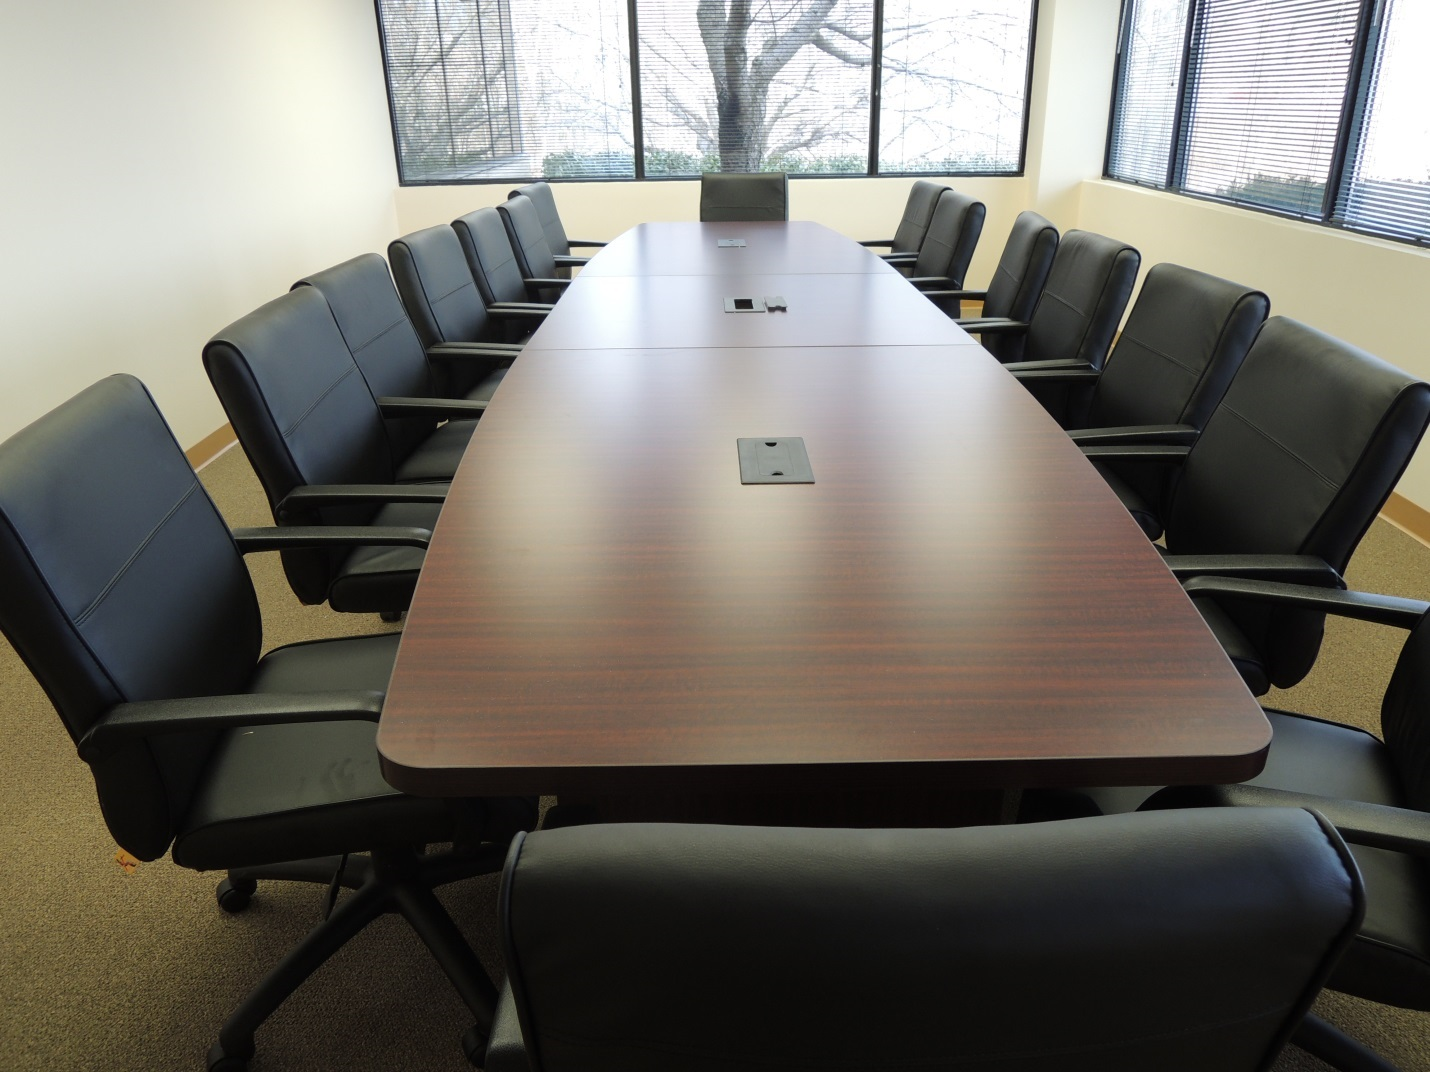 Remanufactured Haworth Workstations Woodlawn MD ReForm - Office source conference table